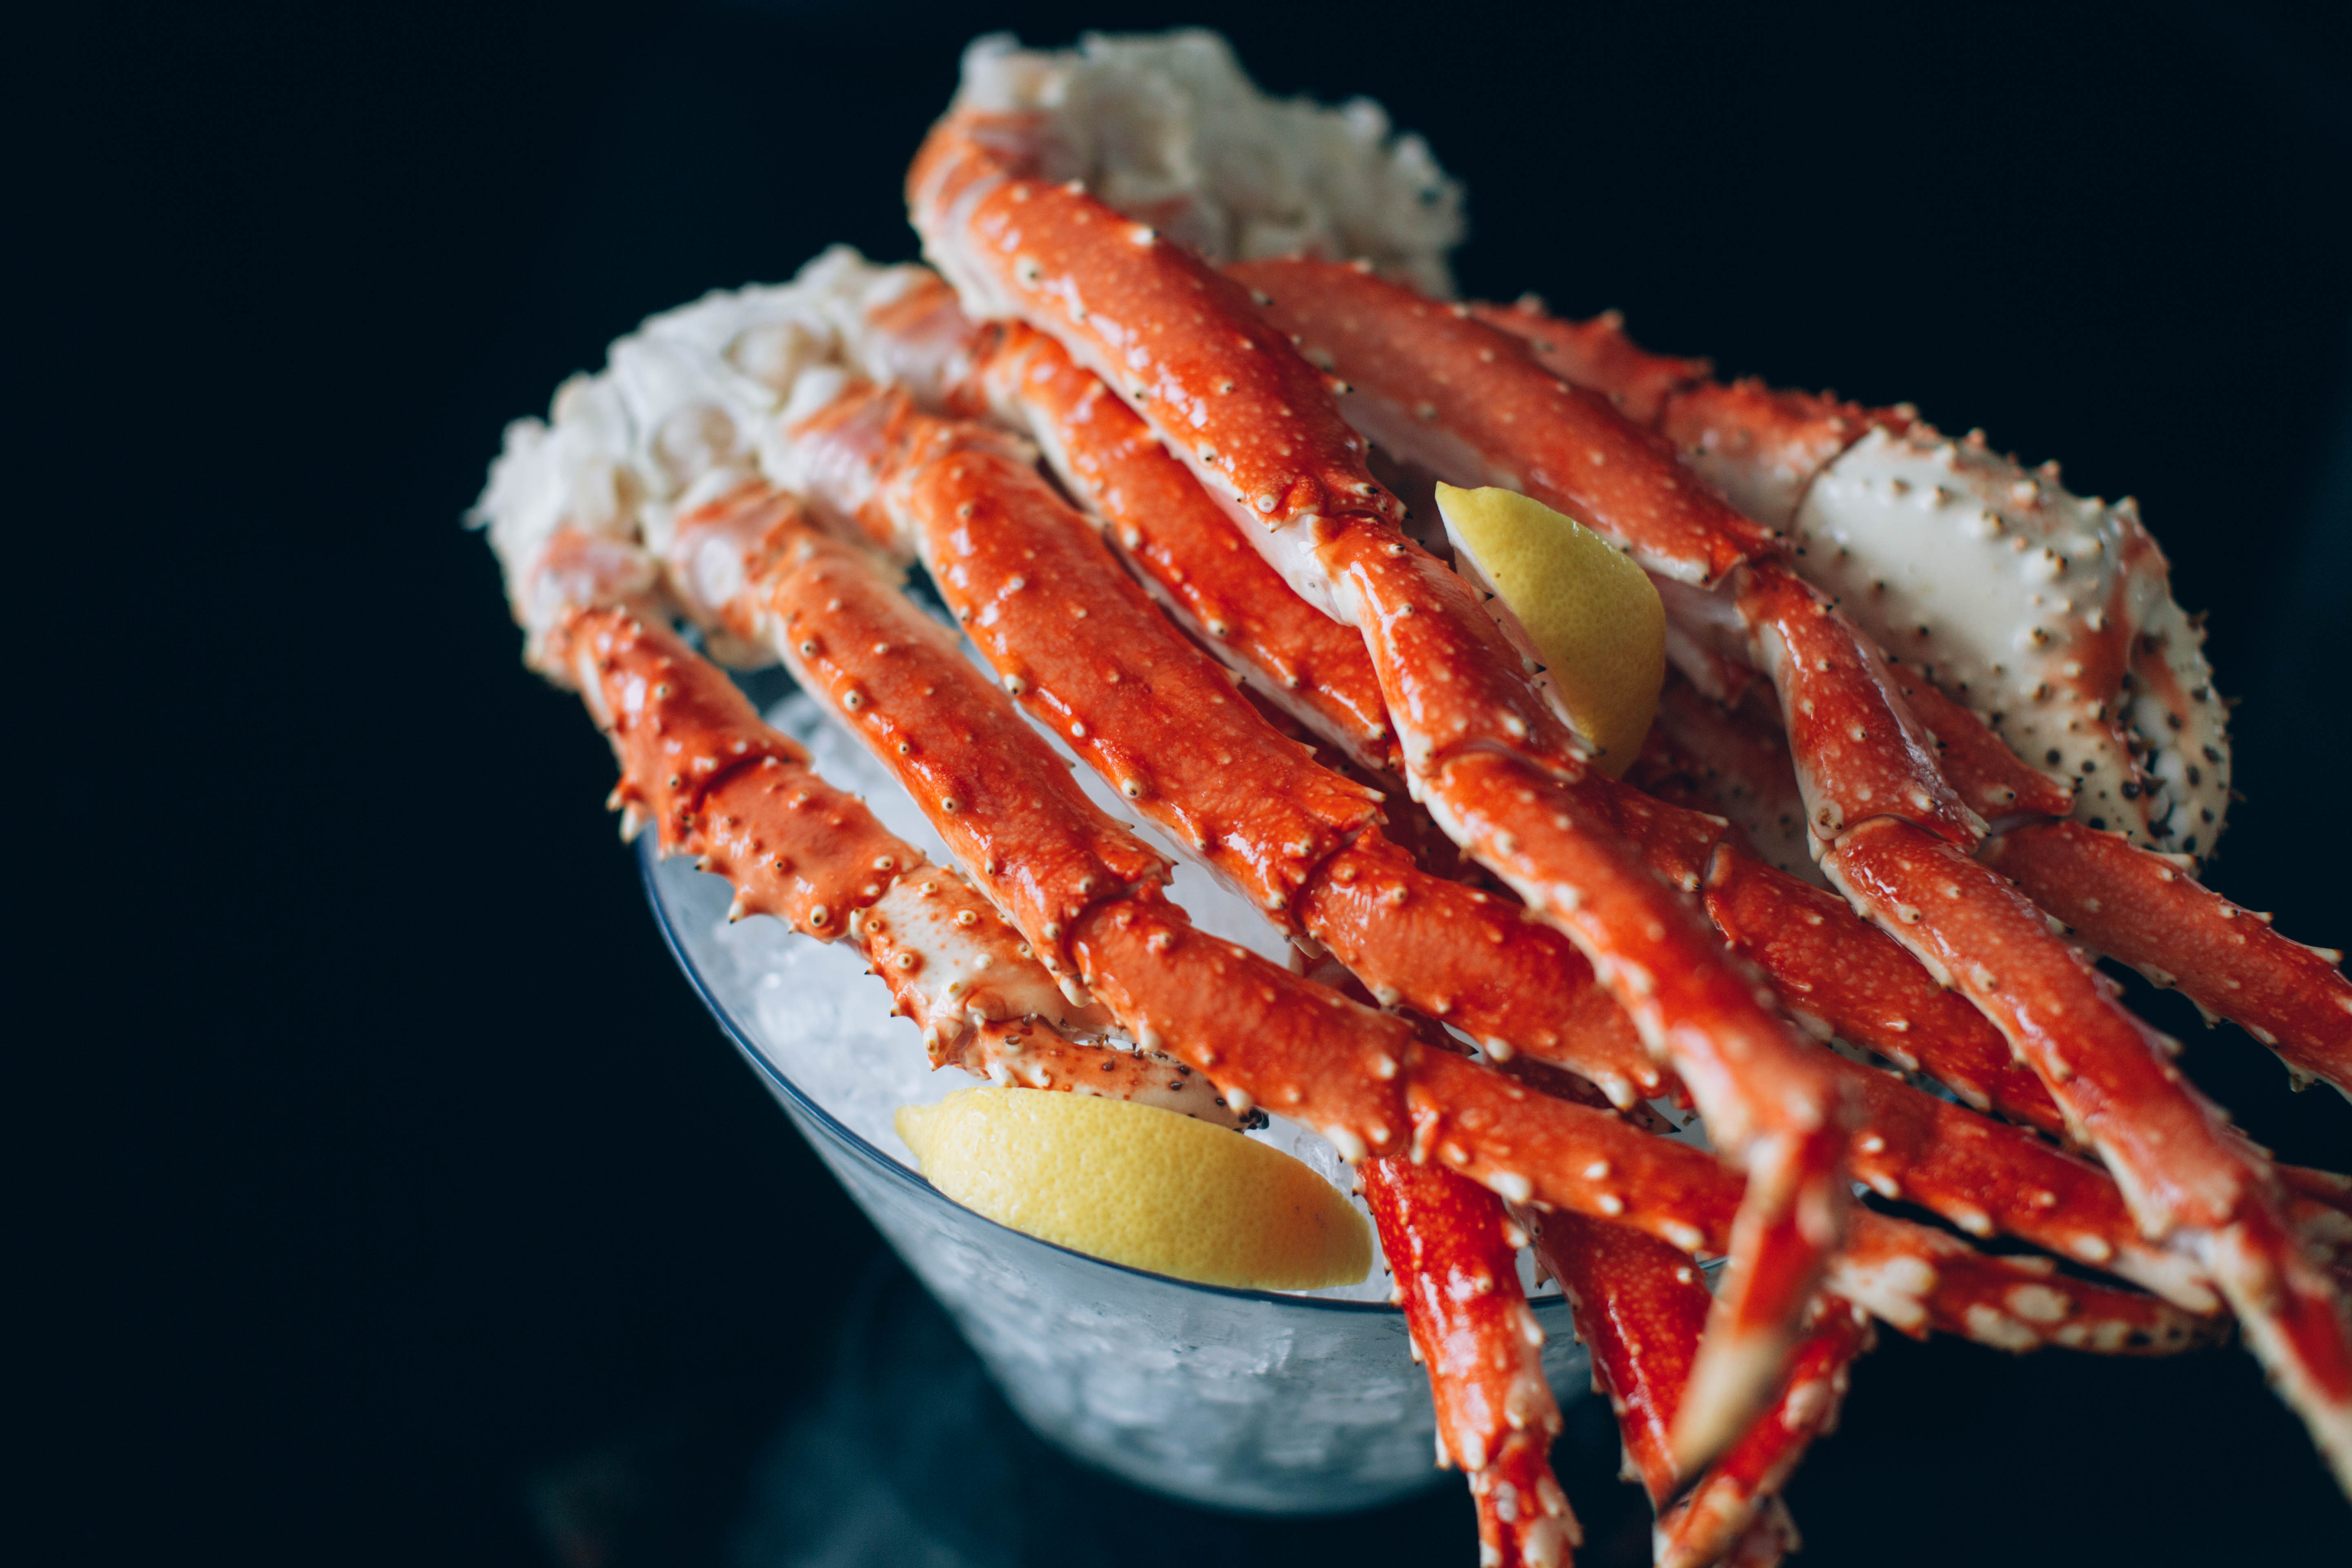 Guarantee Frozen Quality King Crab Legs at the Best Prices